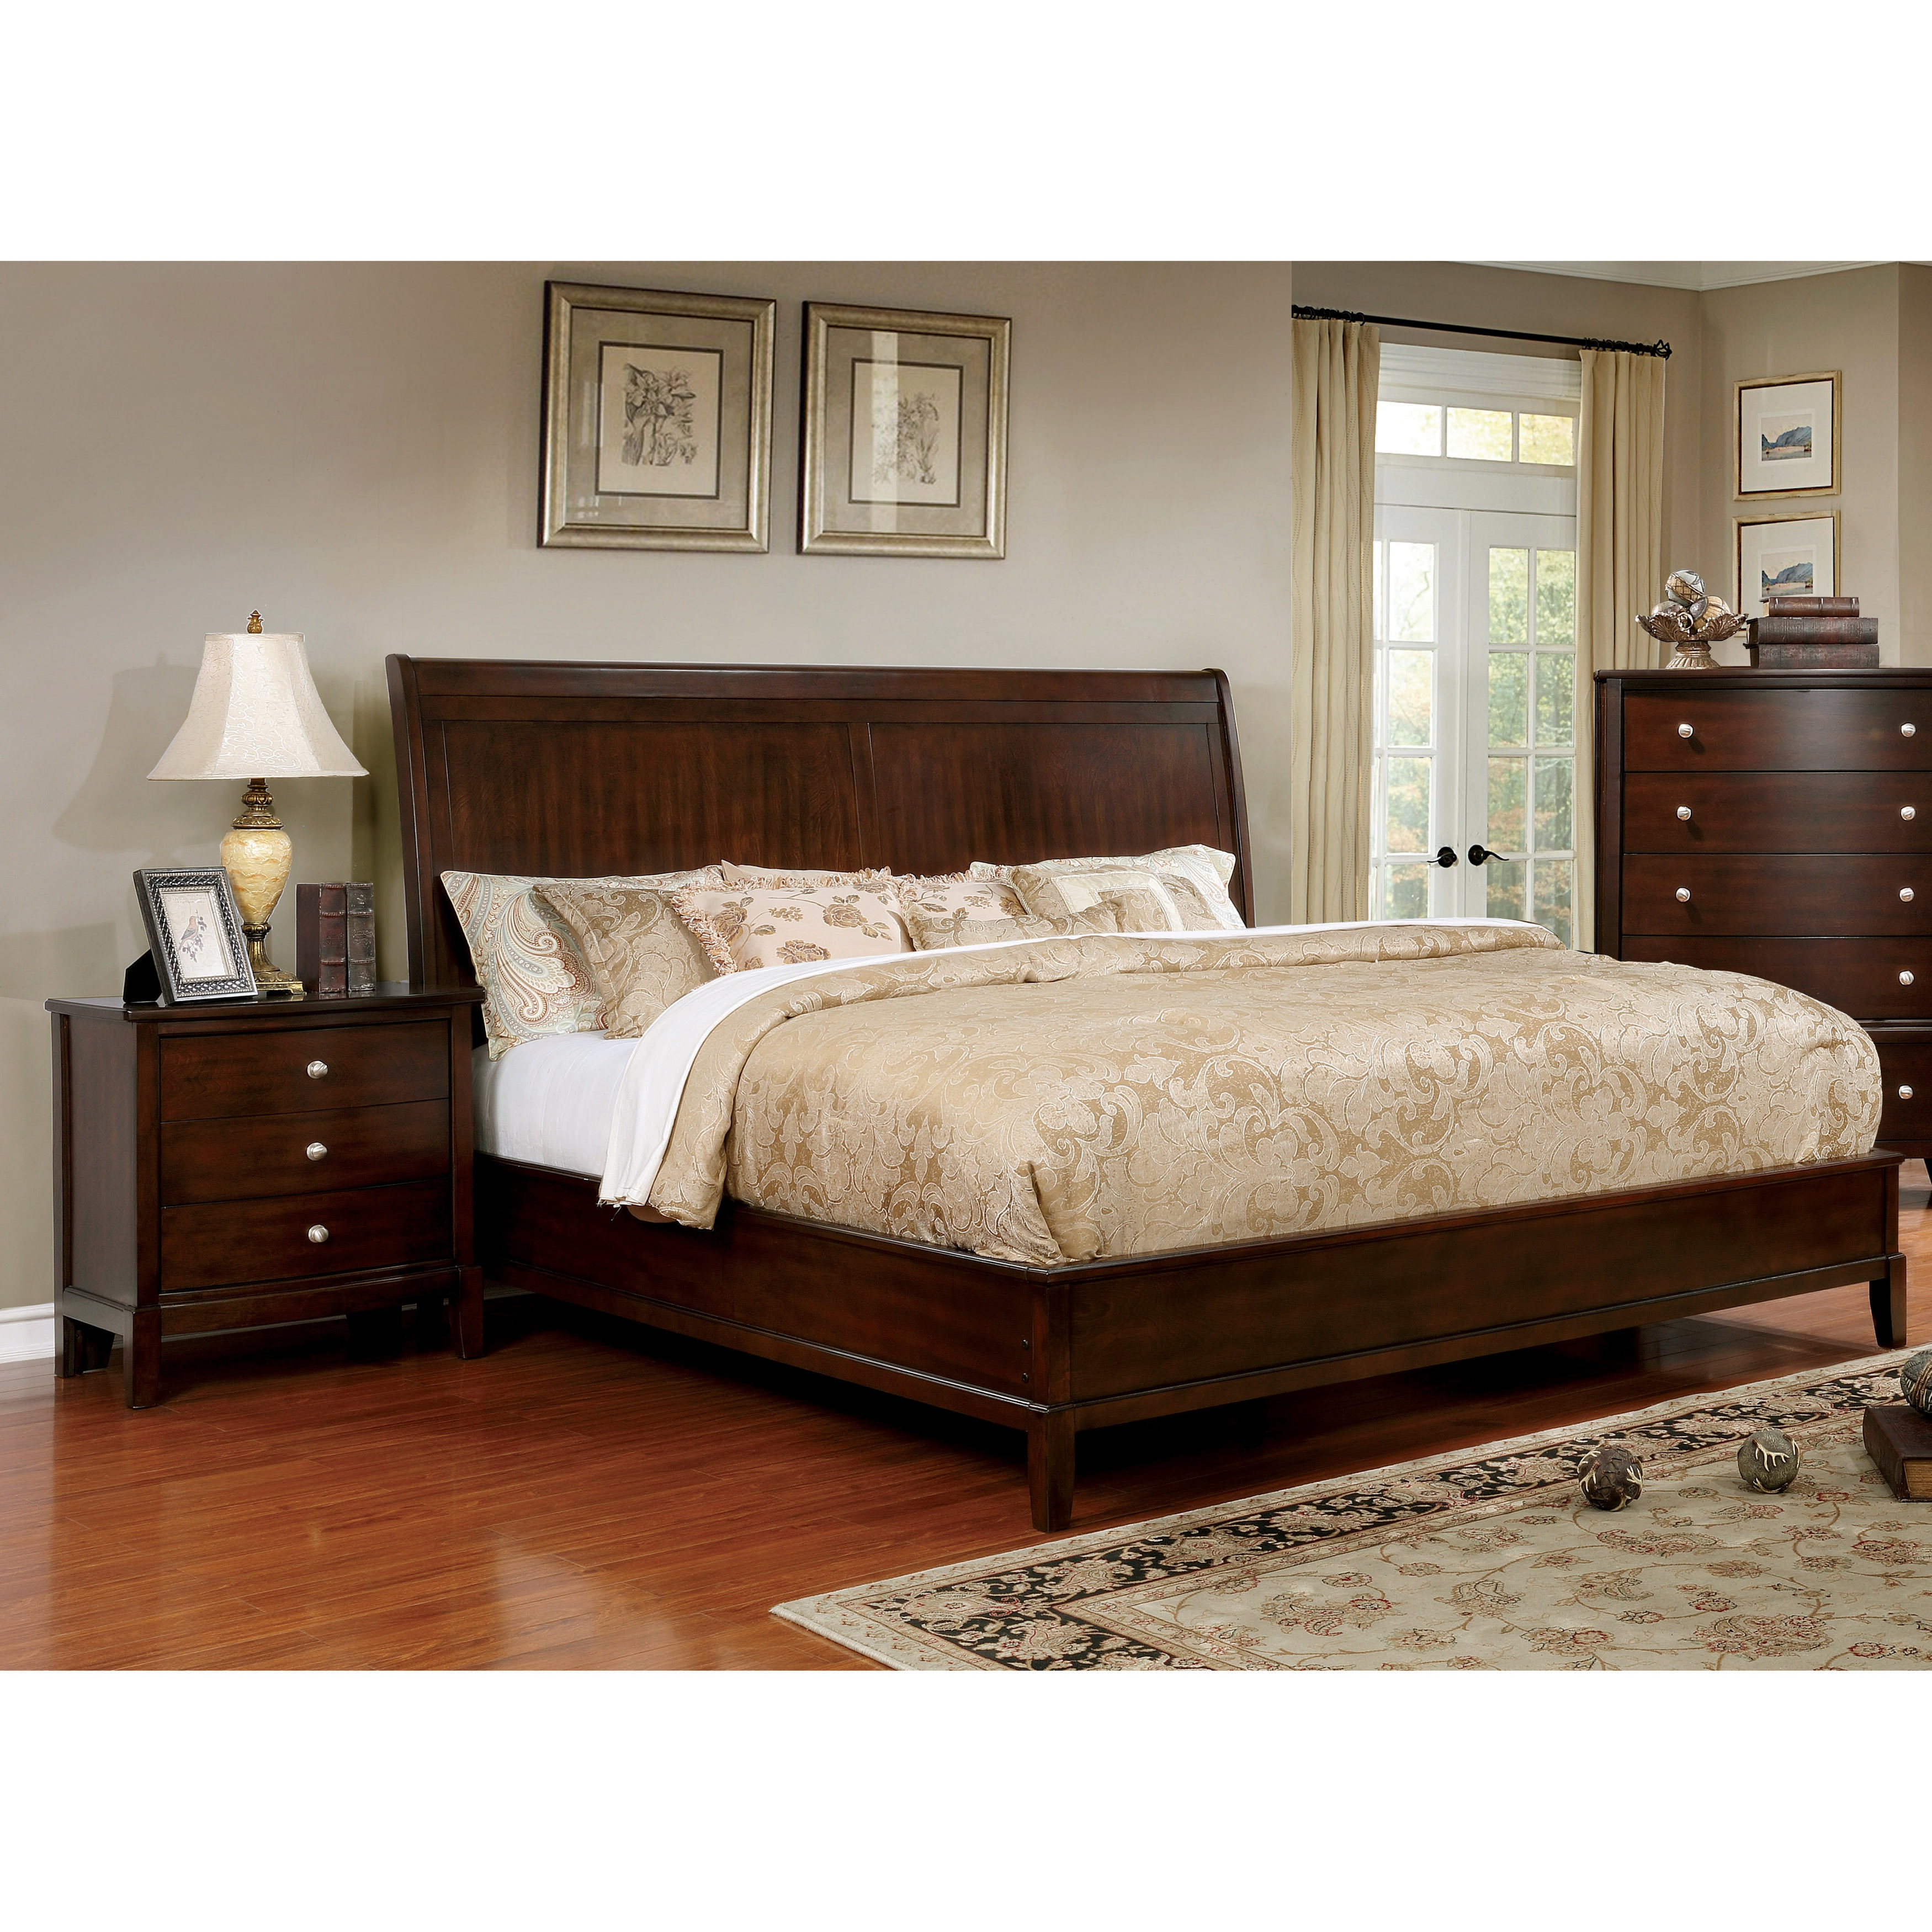 Shop furniture of america kami transitional 2 piece brown cherry bed and nightstand set on sale free shipping today overstock com 17127366